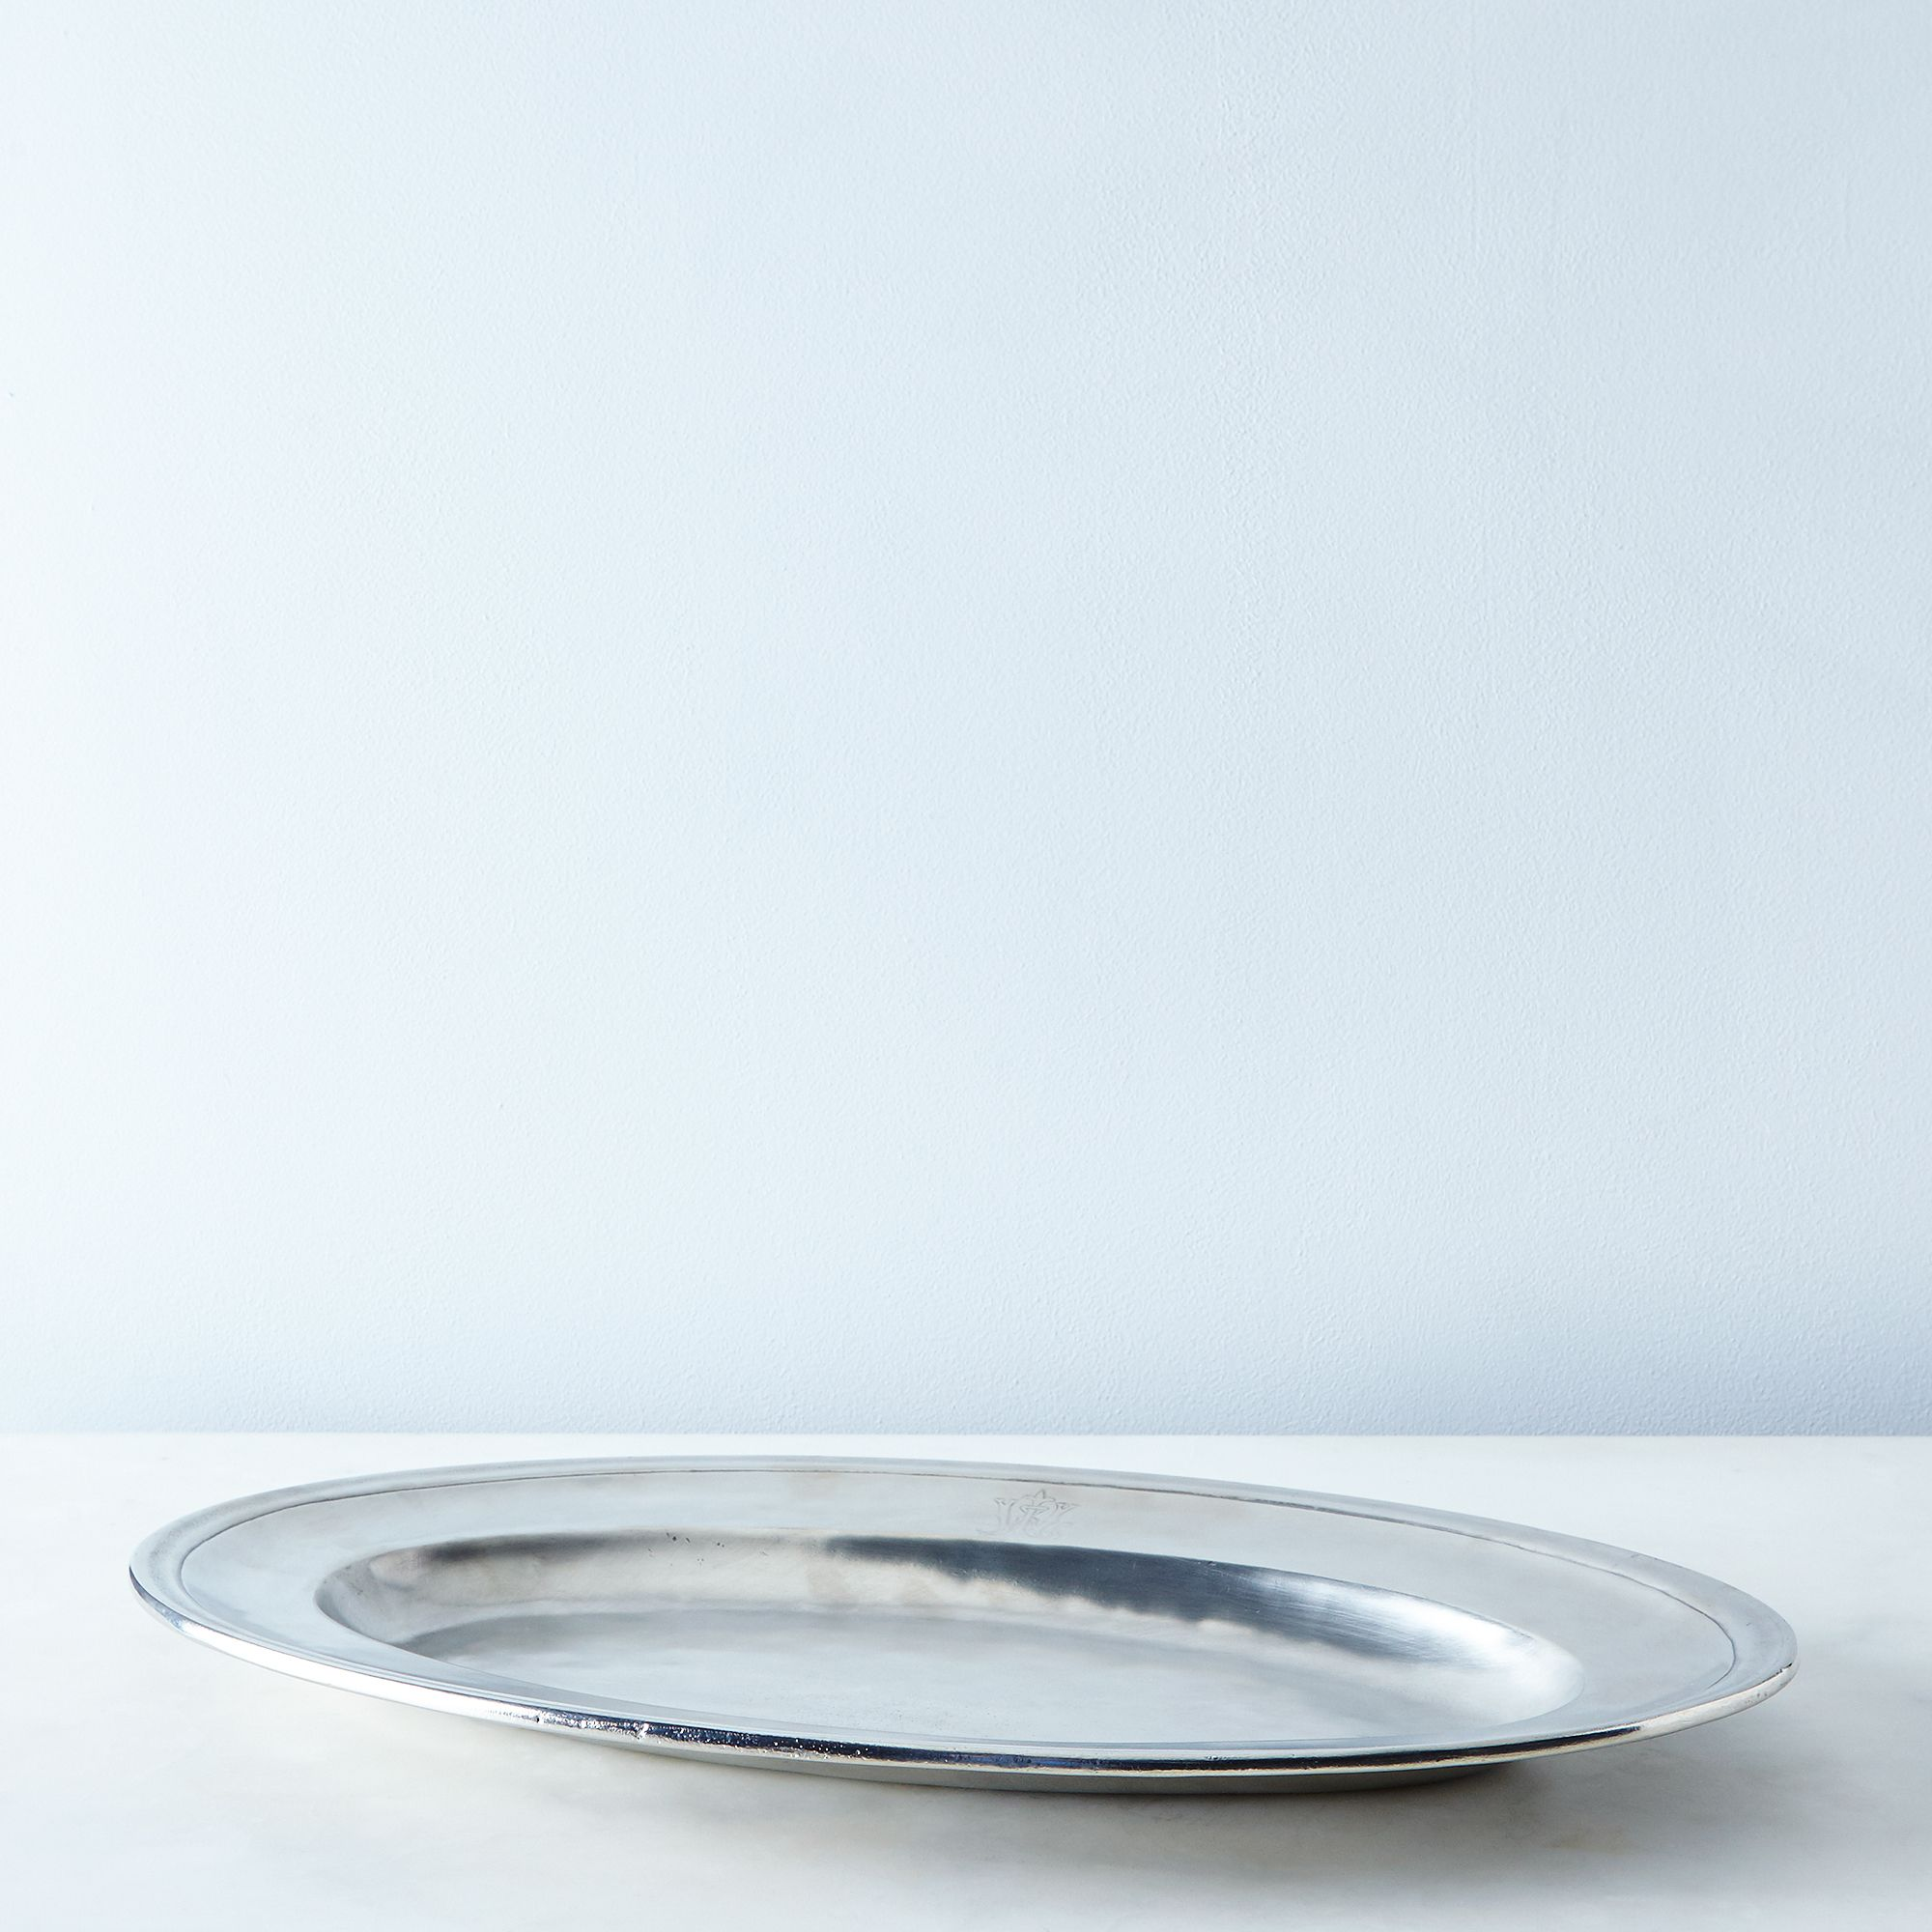 Fc6ee7c6 befc 42ca 8625 faeded2f0027  2015 1008 match large pewter serving platter silo v2 rocky luten 048